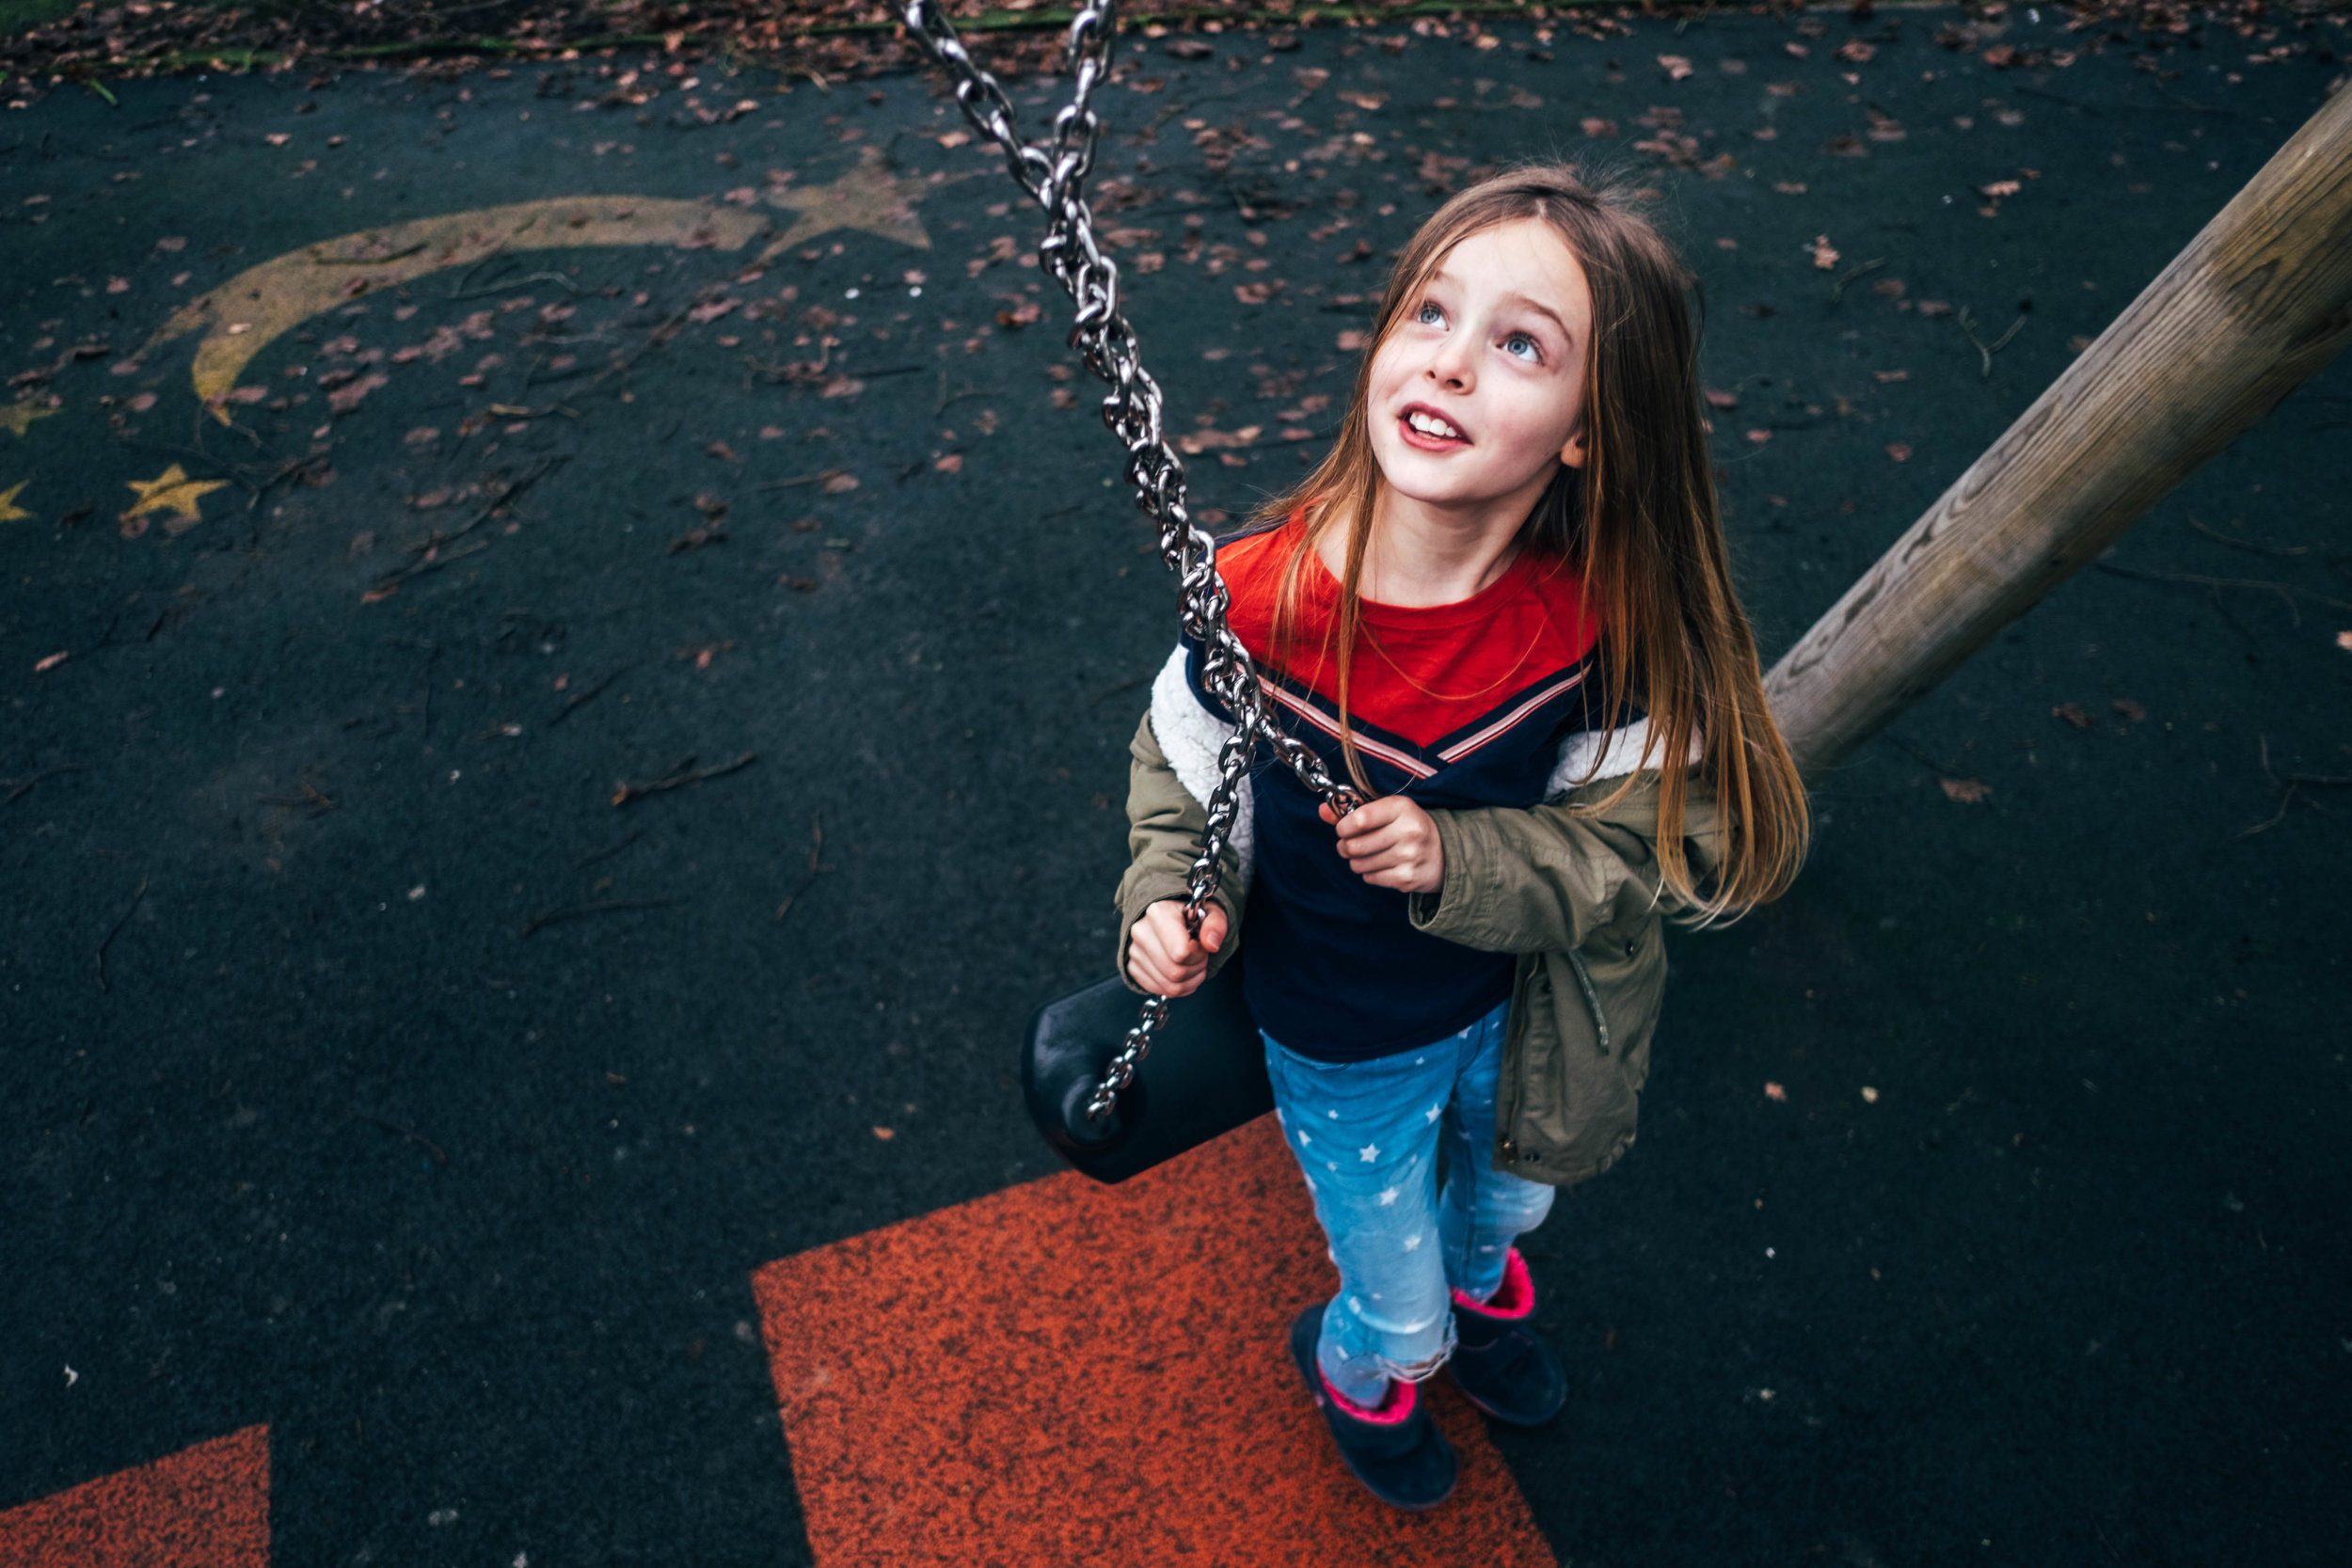 Girl looks up at twisted swing in park Essex Documentary Family Wedding Photographer